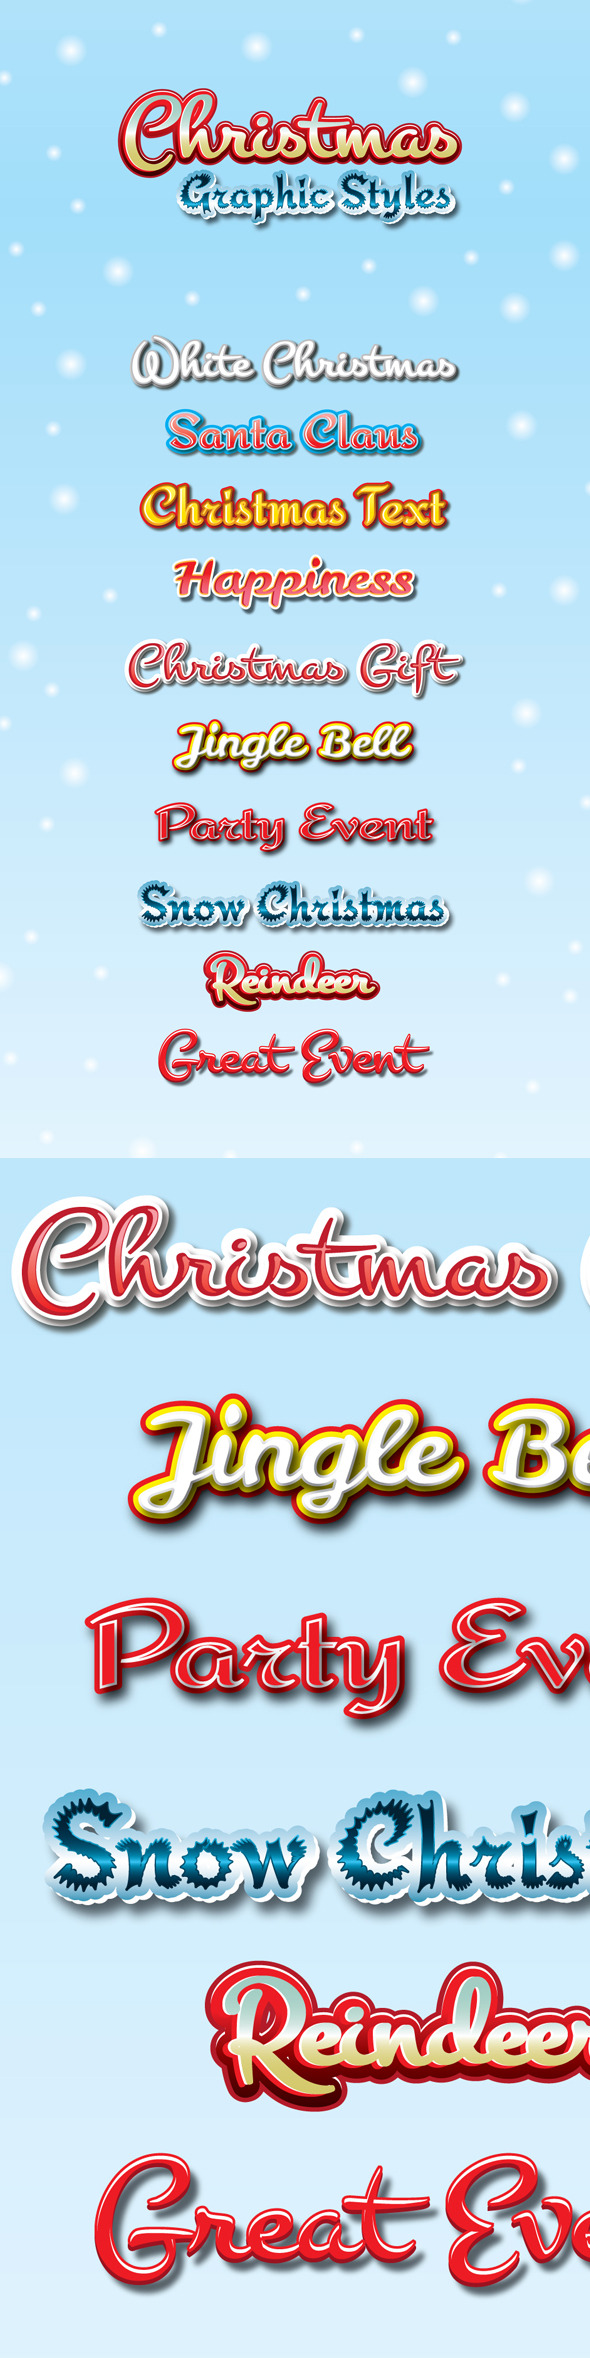 GraphicRiver Christmas Graphic Styles for Ai 9426081